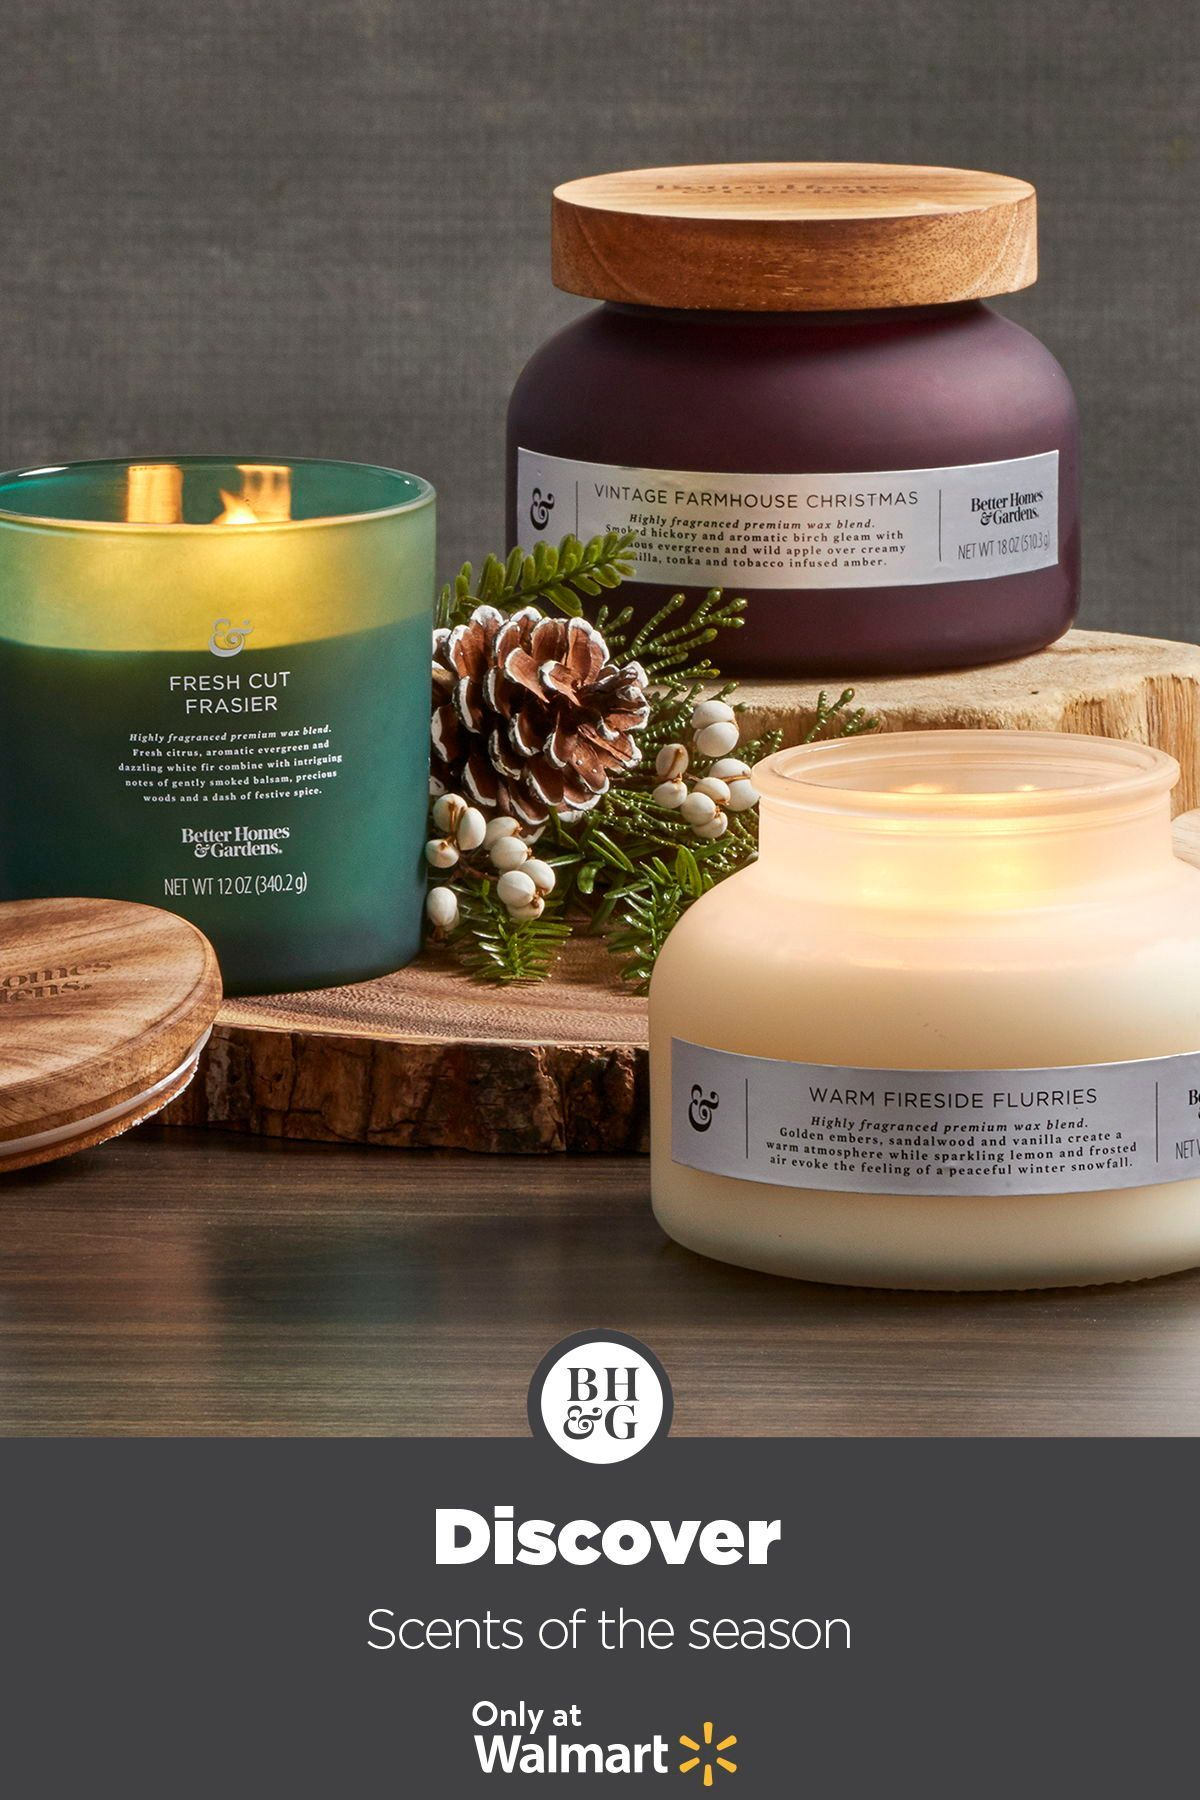 a672939c14ed655e456635c8ec5e68f0 - Better Homes And Gardens Sandalwood And Vanilla Candle